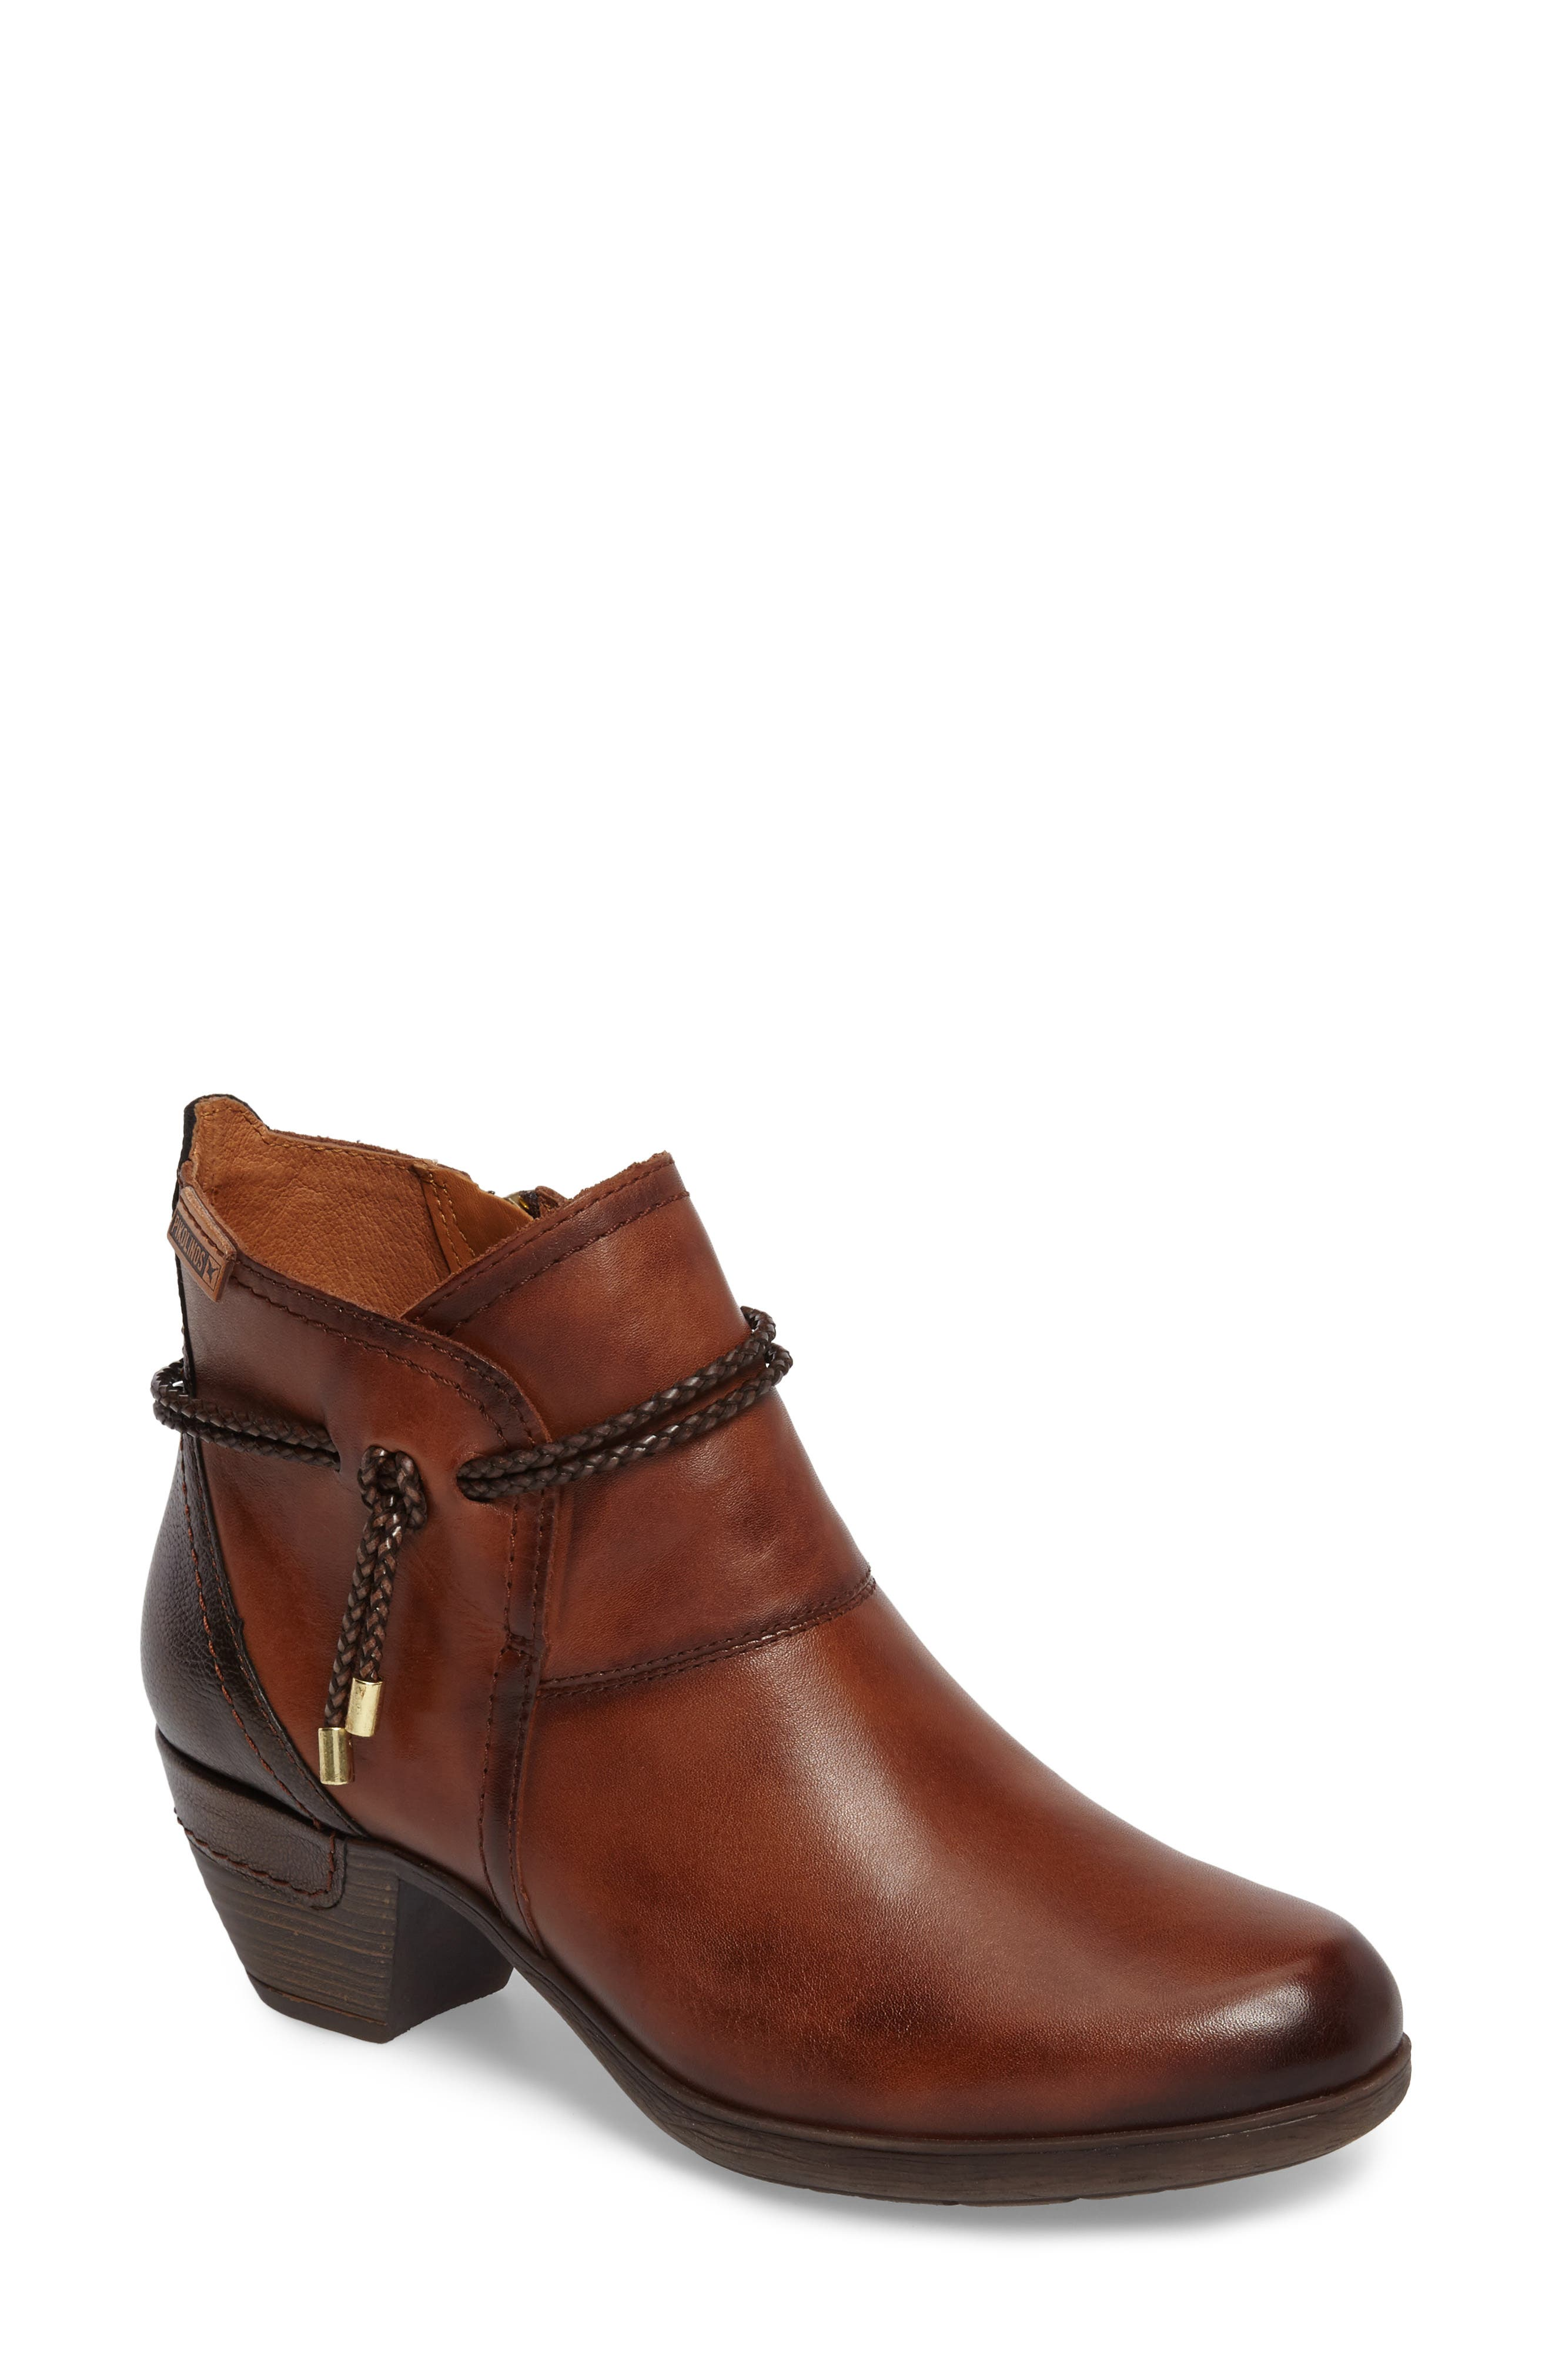 'Rotterdam' Braid Strap Bootie,                         Main,                         color, CUERO BROWN OLMO LEATHER